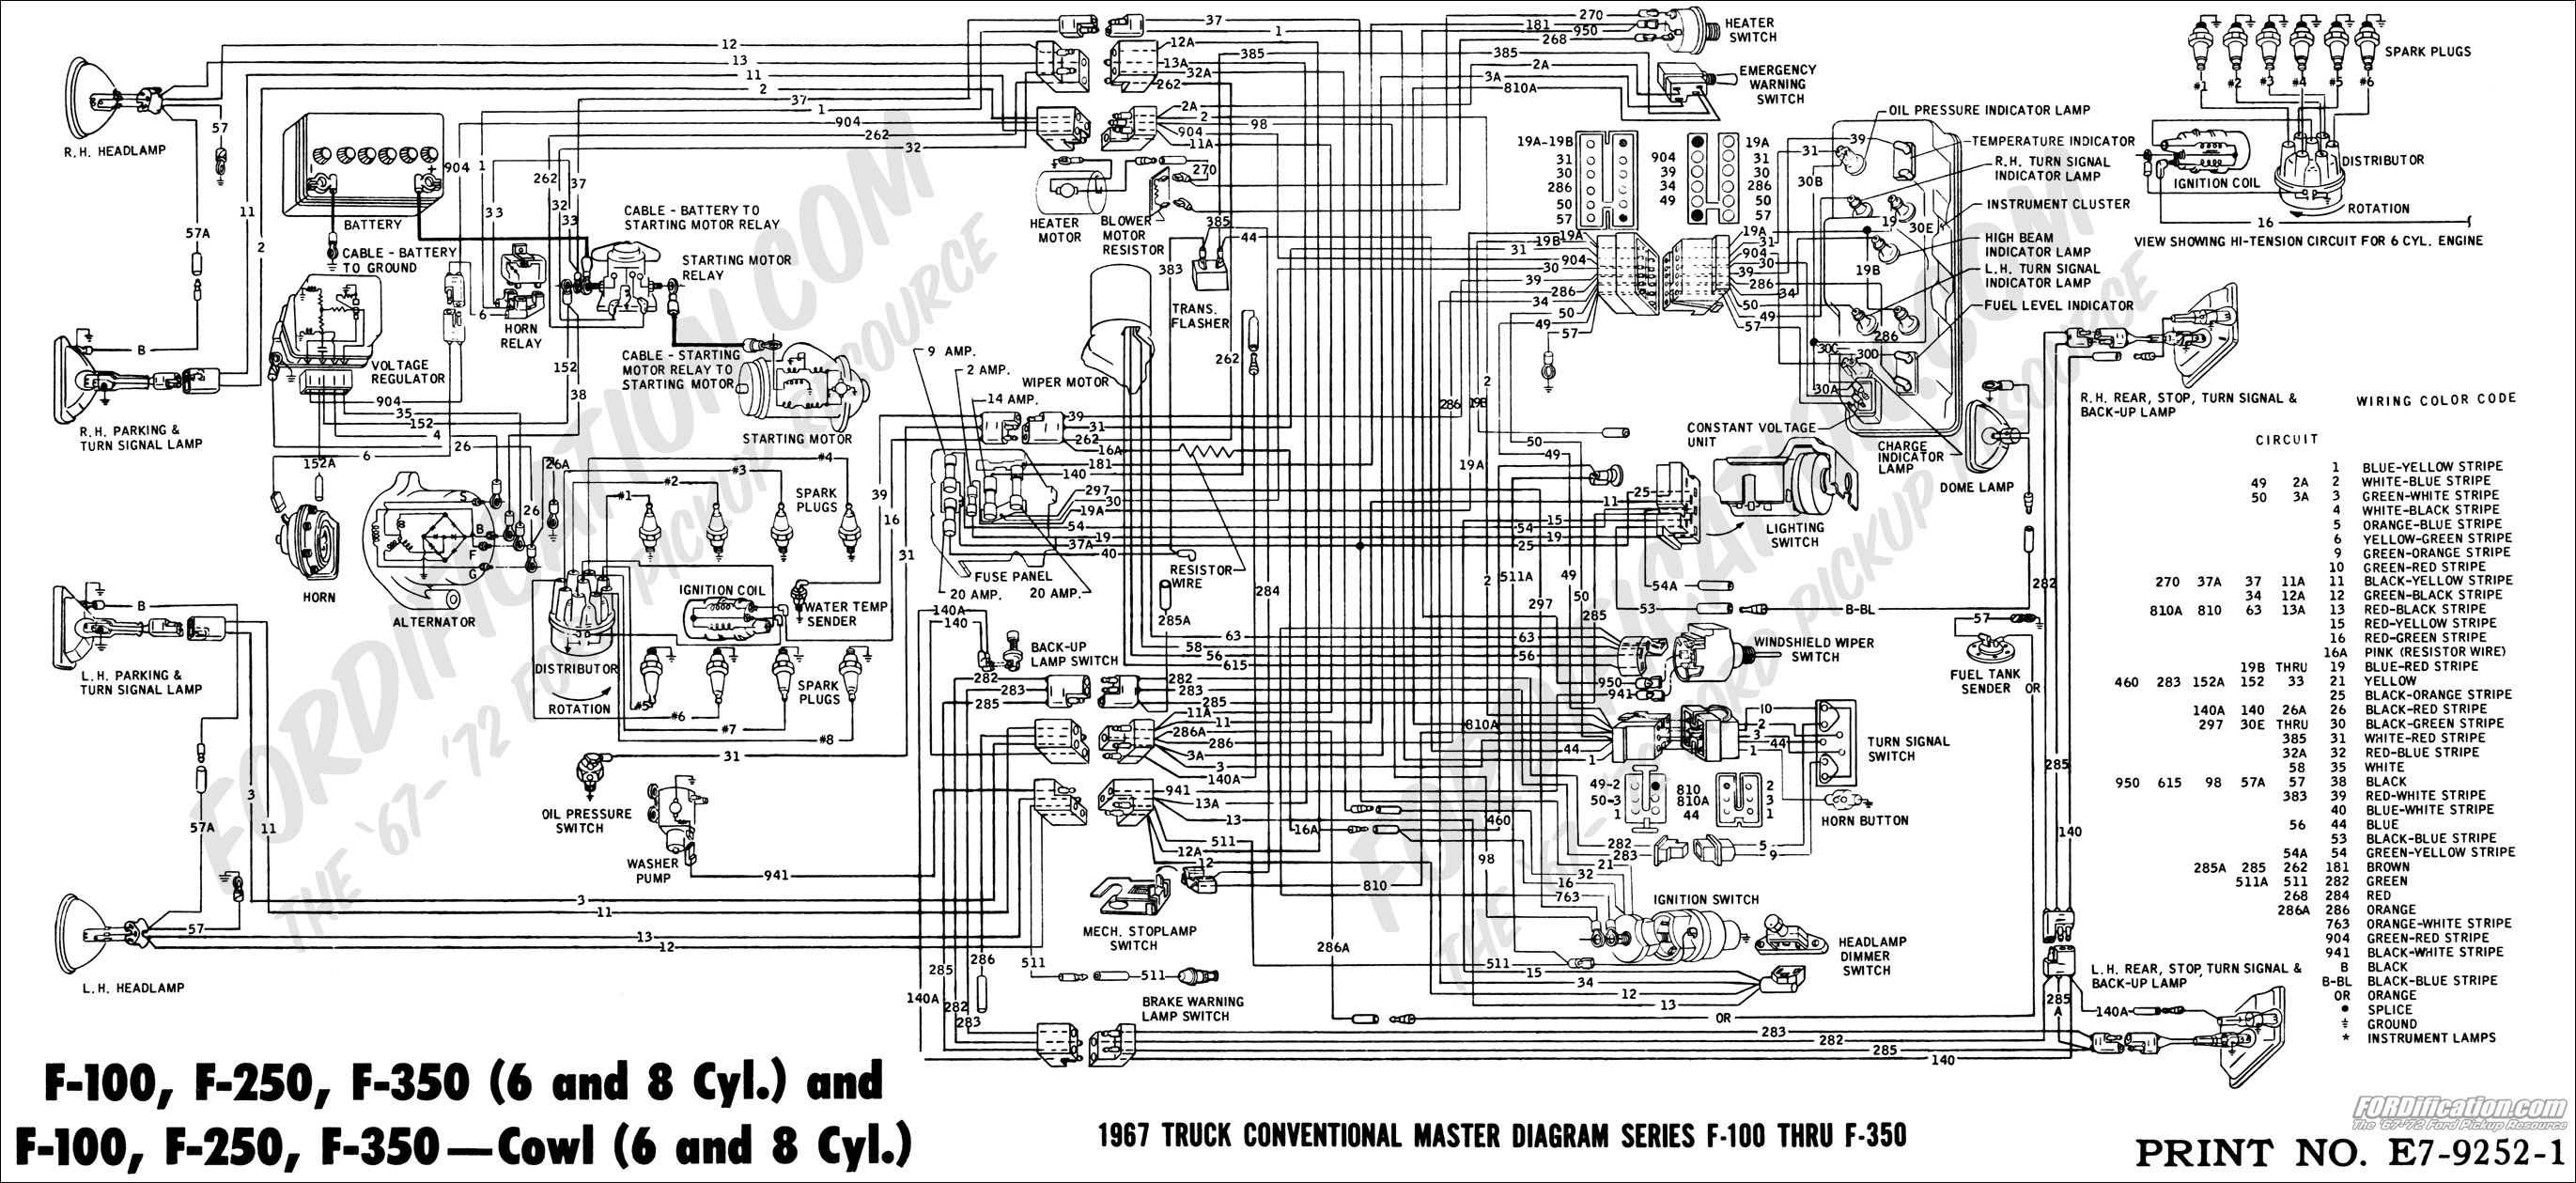 1989 ford f350 wiring diagram wiring schematics diagram rh mychampagnedaze com Ford Ranger Radio Wiring Diagram 1988 ford ranger ignition wiring diagram